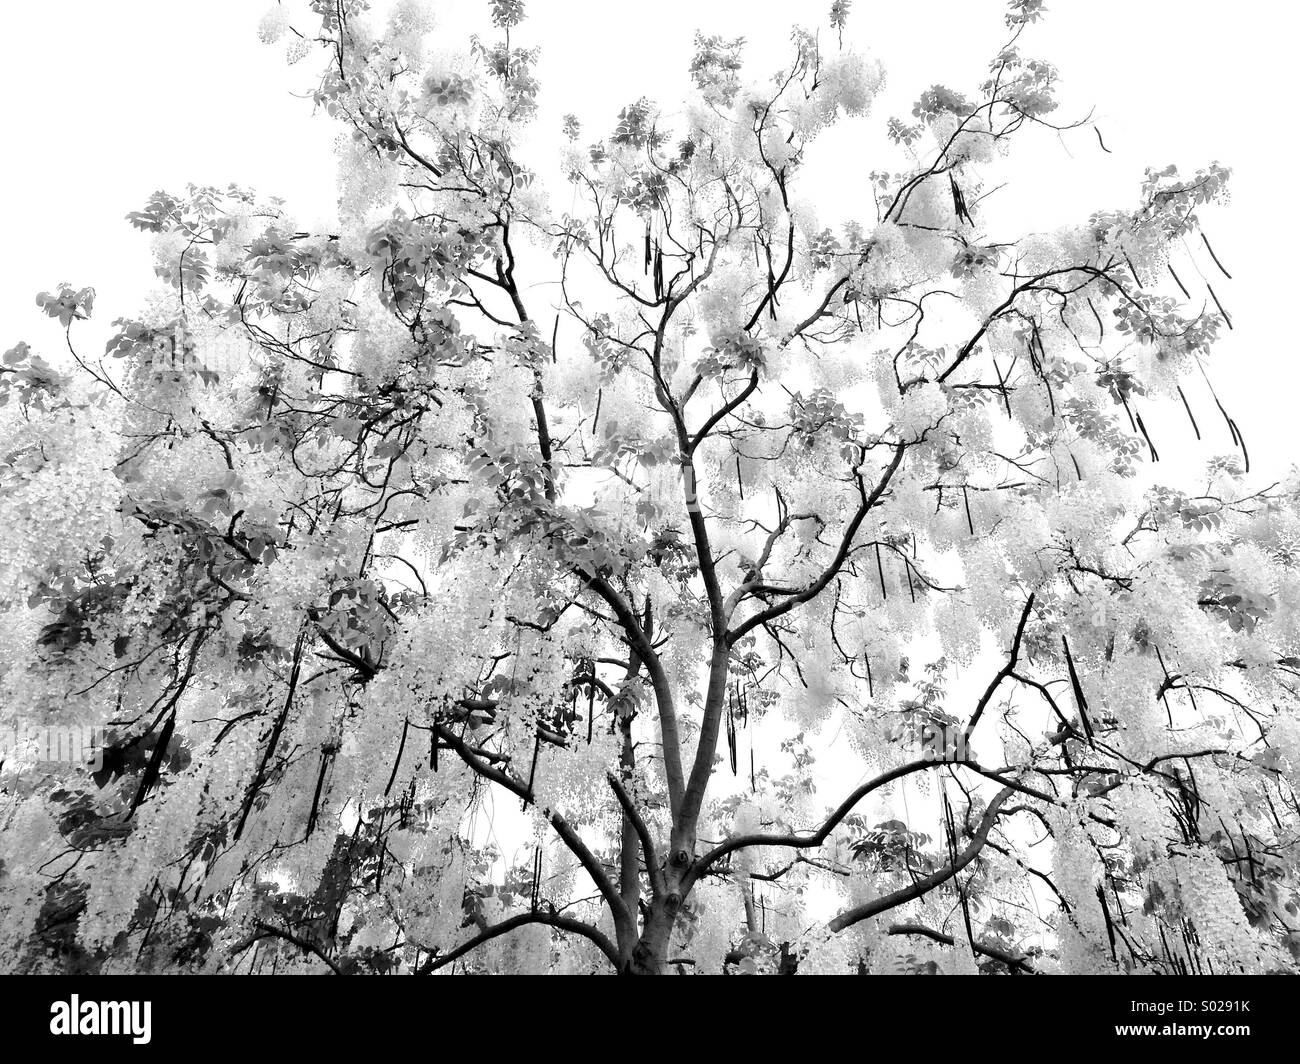 Black and white noir tree - Stock Image